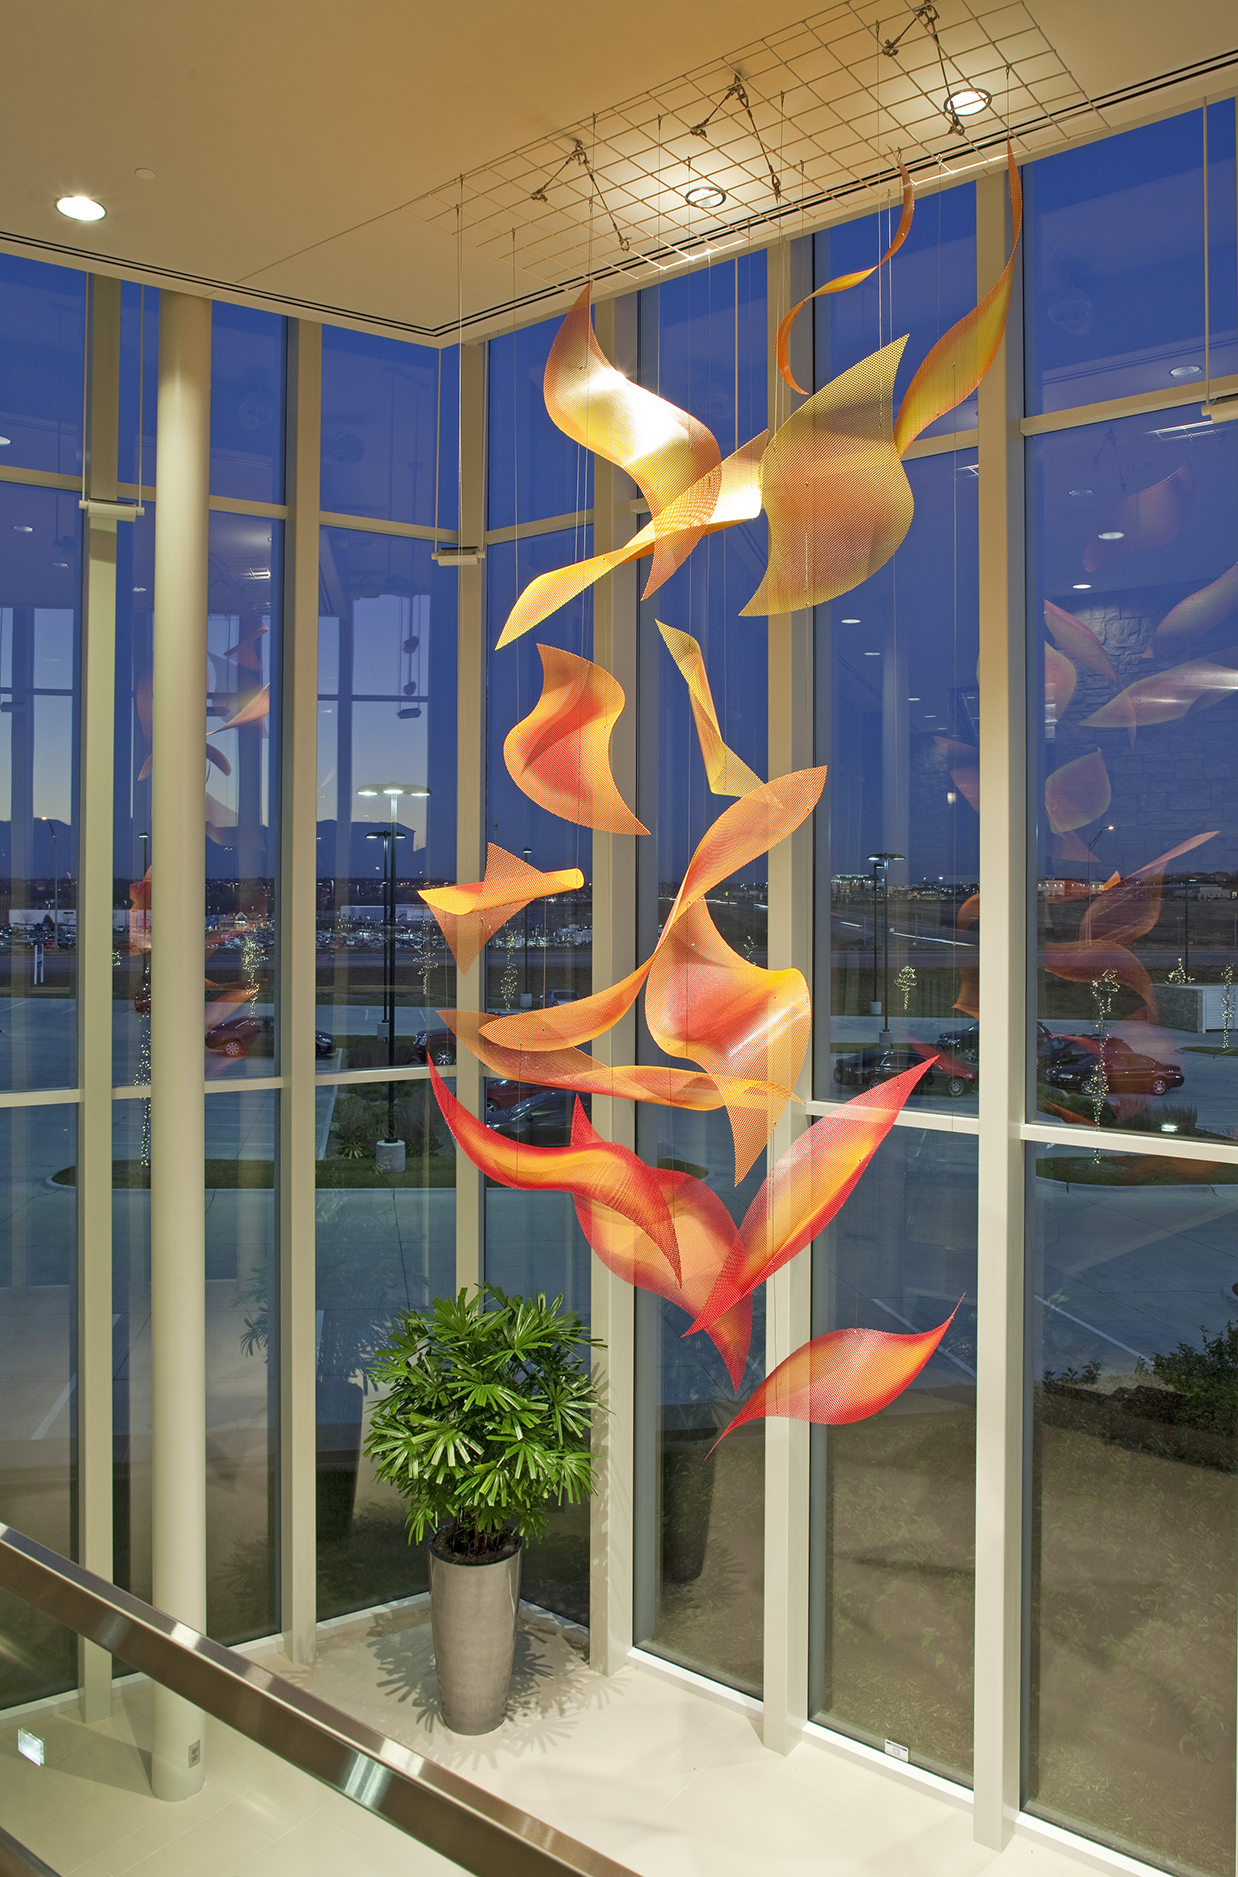 Sunrise Cascade suspended contemporary sculpture by Talley Fisher in a glass atrium at dusk.